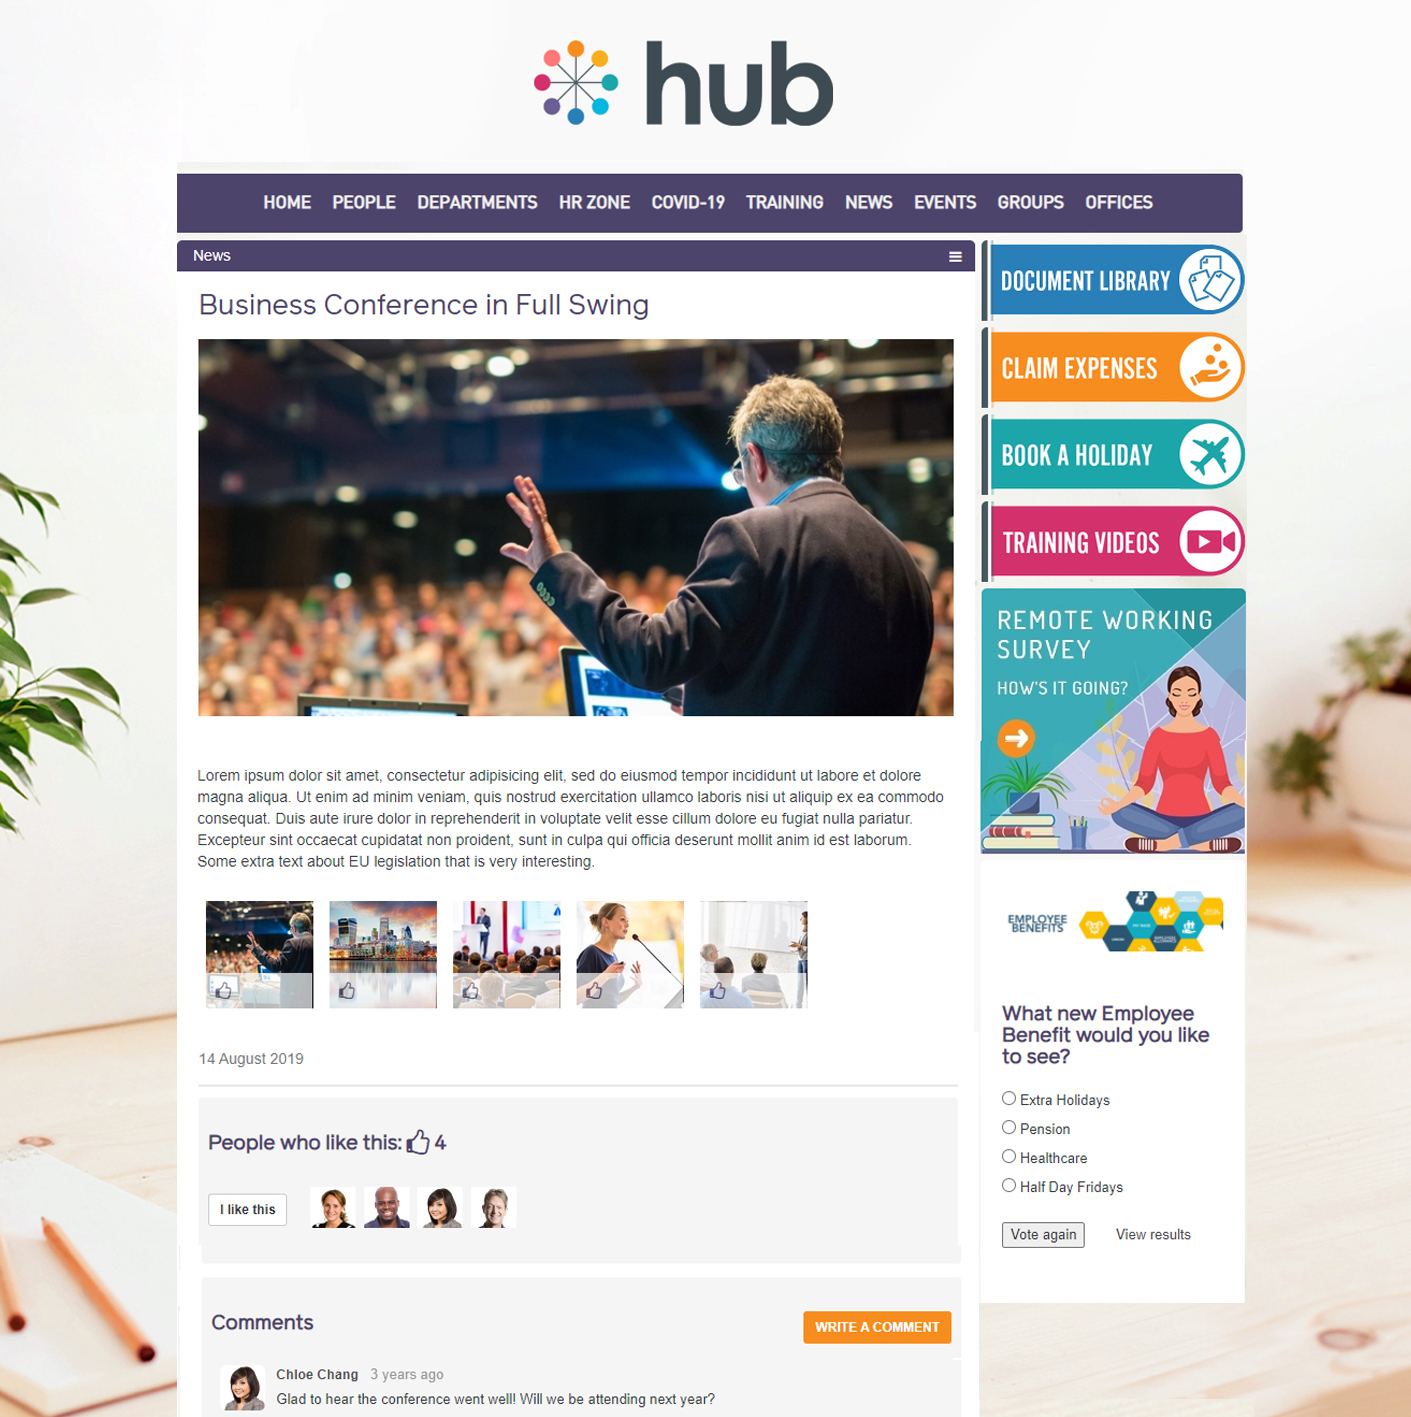 Hub News Article - Categorise your news articles, turn on social features for Liking and Comments, and add rich media i.e. polls, forms, image galleries, etc.